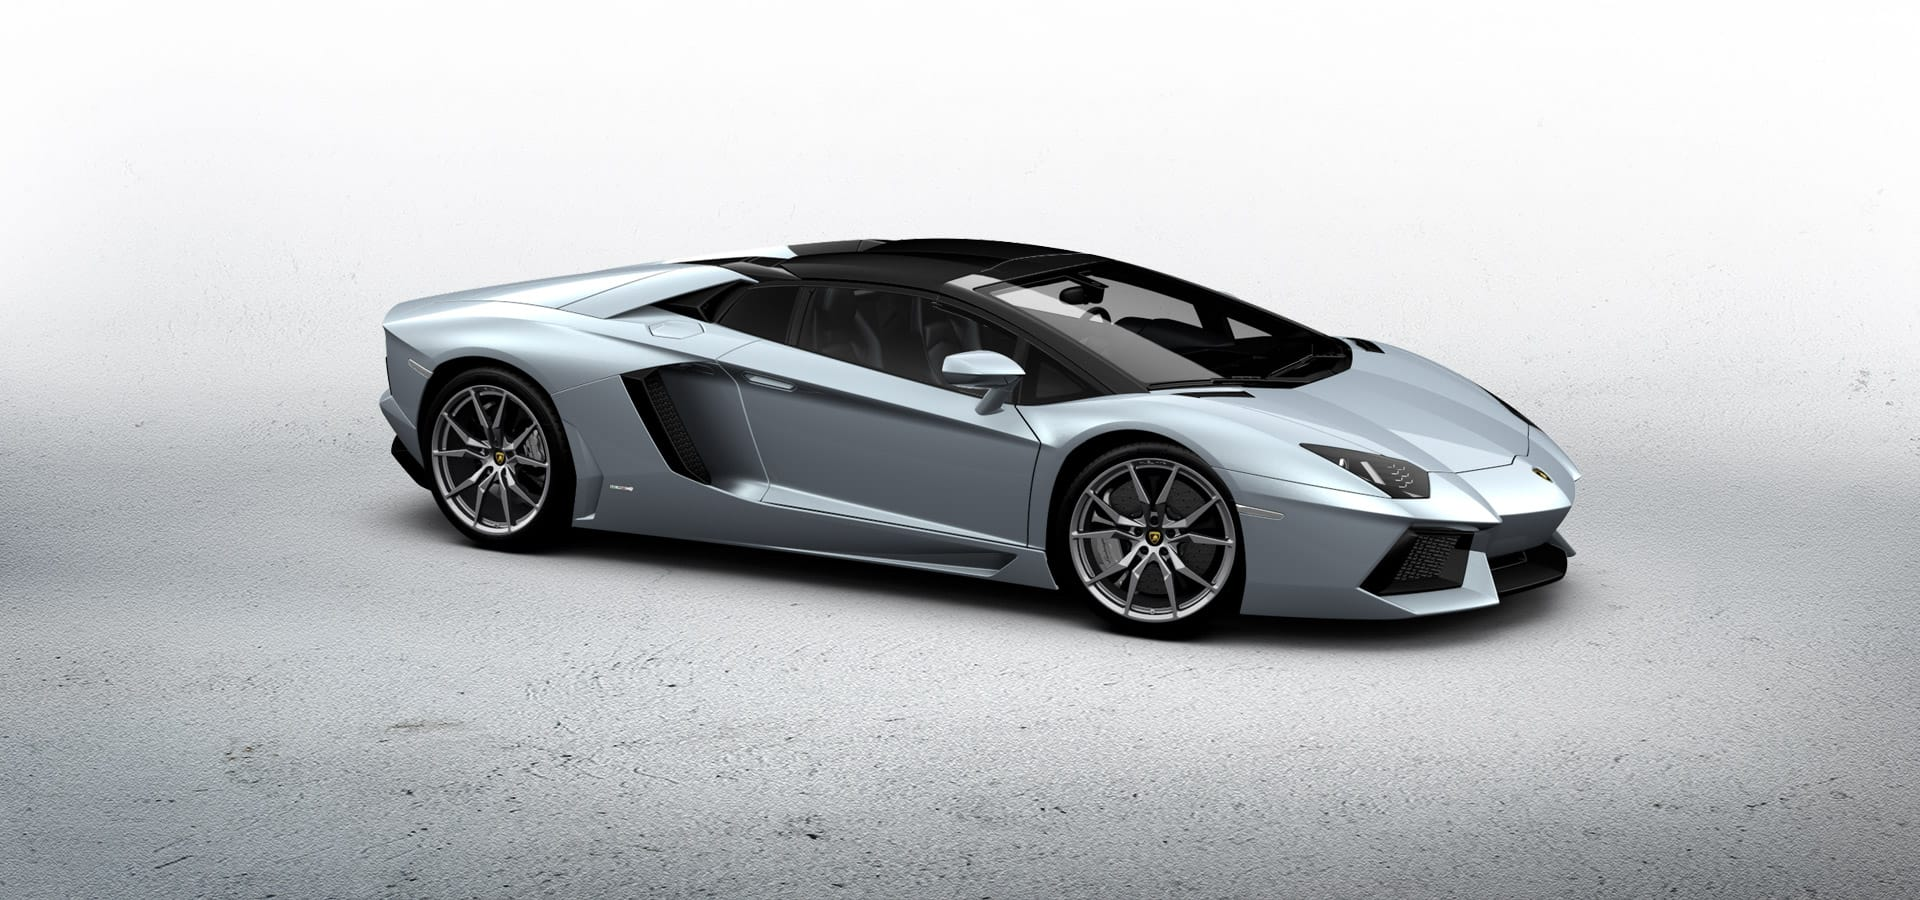 Lamborghini Aventador Roadster - Pictures, Videos